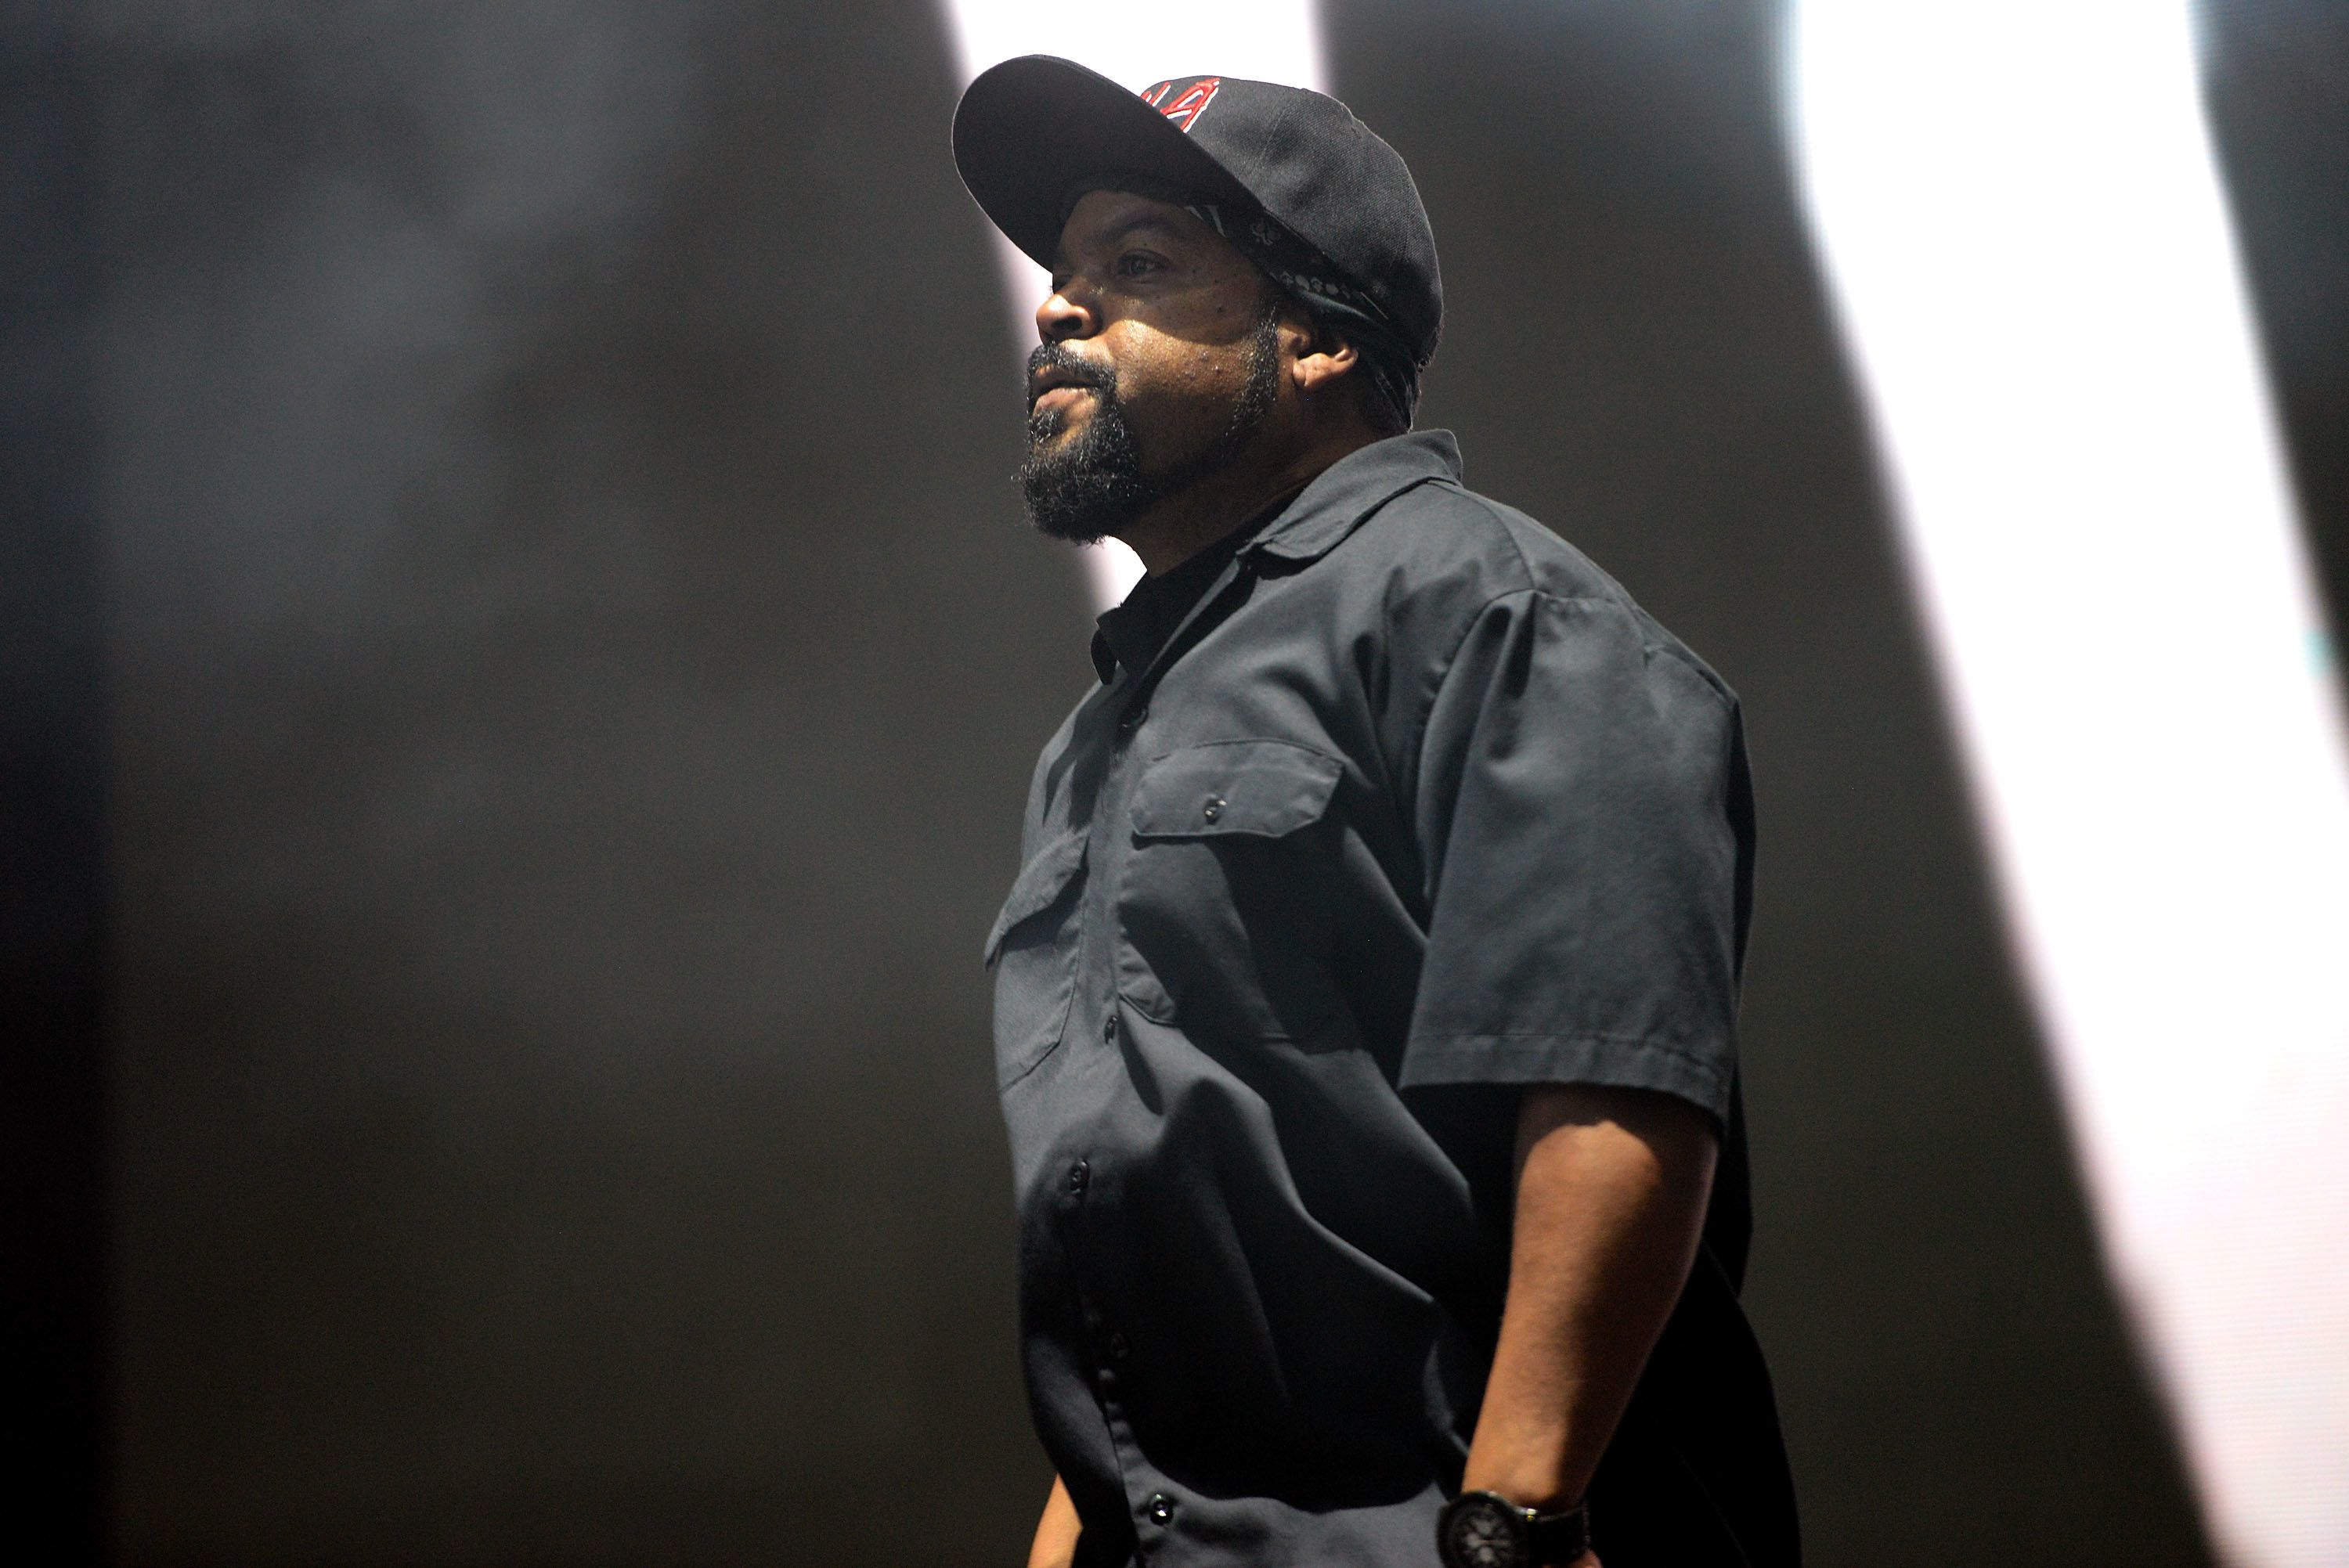 FONTANA, CA - JULY 30:  Rapper Ice Cube performs onstage during the Hard Summer Festival at Auto Club Speedway on July 30, 2016 in Fontana, California.  (Photo by Scott Dudelson/WireImage)